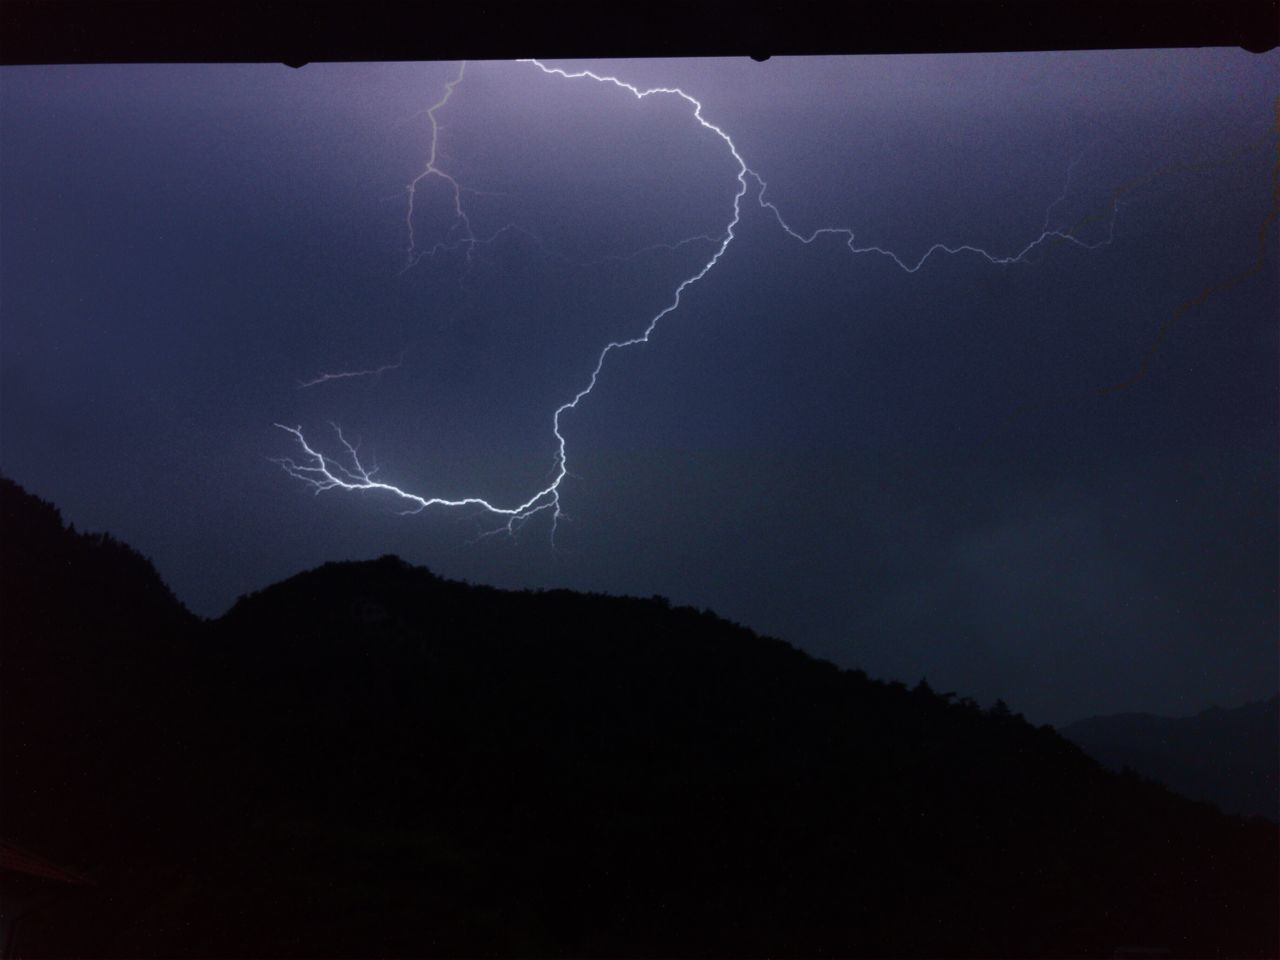 lightning, storm, power in nature, cloud - sky, beauty in nature, thunderstorm, power, sky, night, forked lightning, nature, dramatic sky, mountain, sign, environment, silhouette, scenics - nature, no people, warning sign, outdoors, extreme weather, light